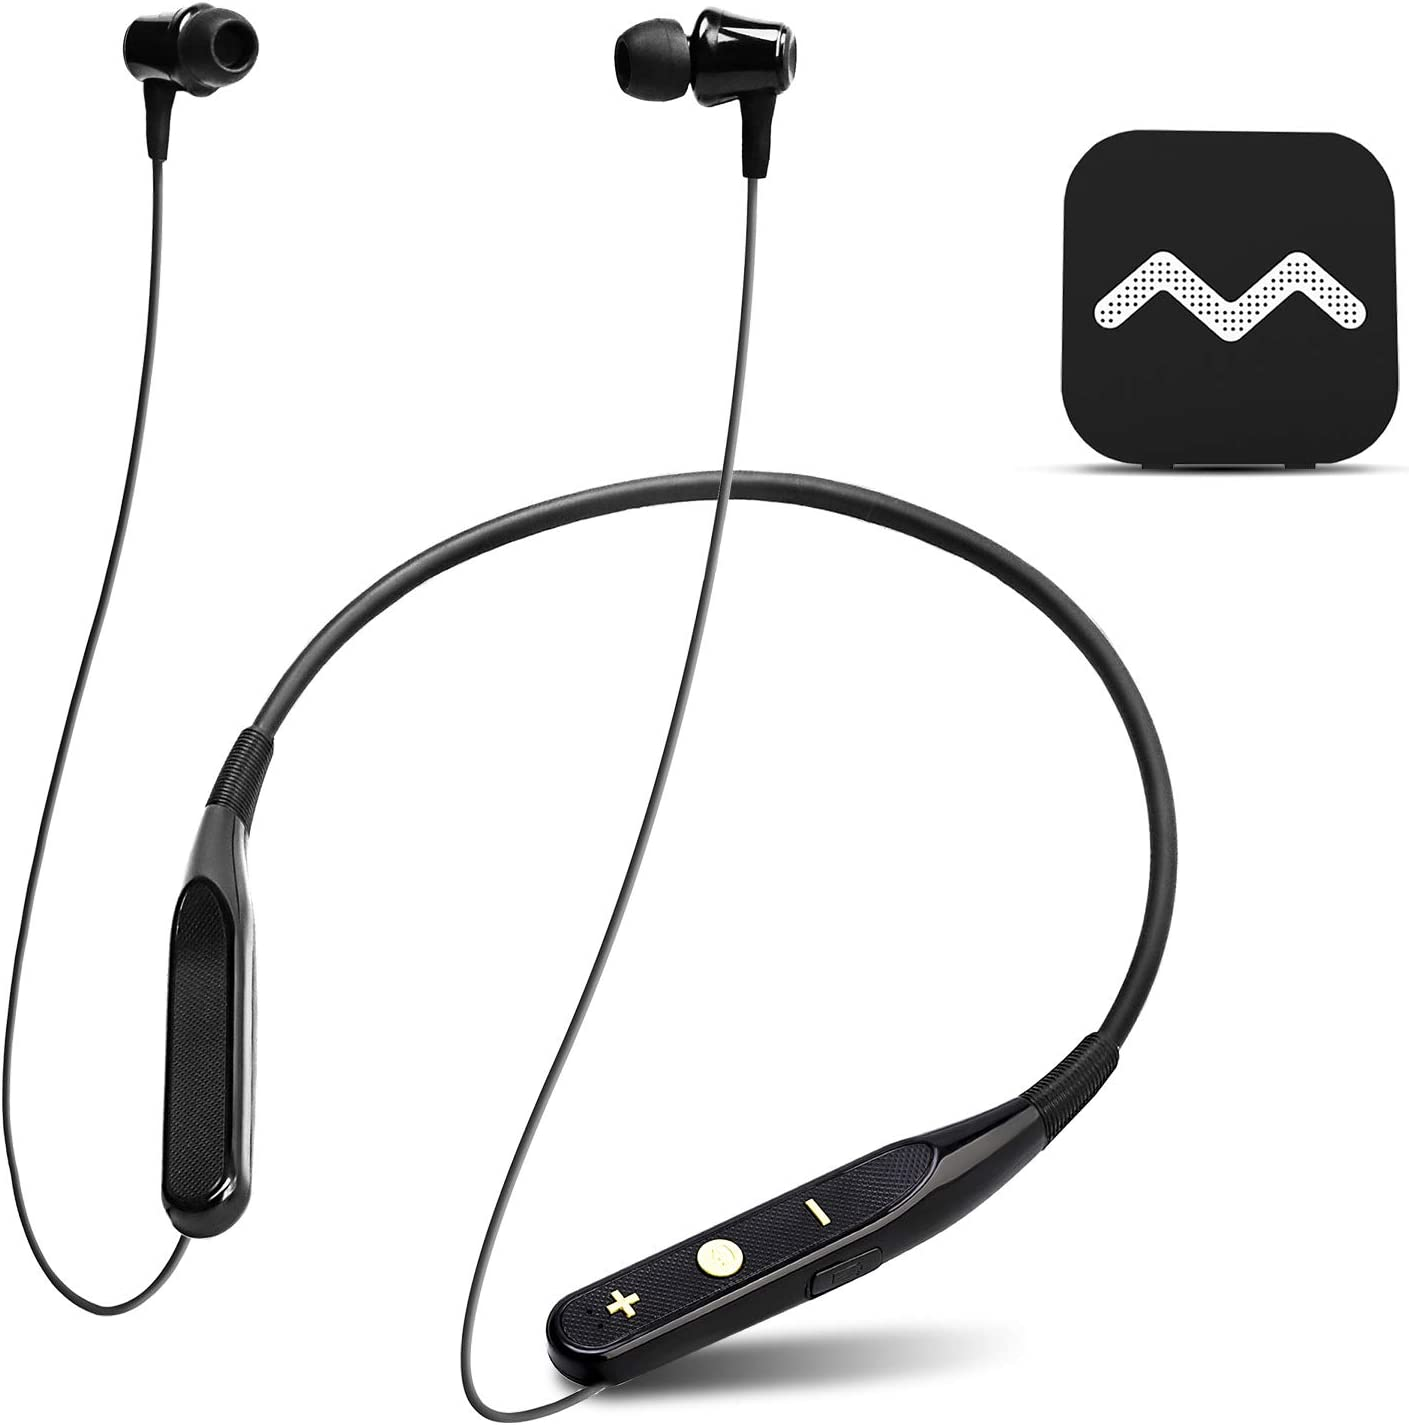 Rechargeable Hearing Aid Amplifier for TV Watching, Wireless Headphones Neckband Pocket Talker for Seniors & Adults, Conversation Enhancing Assist Device with Remote Microphone Noise Cancelling - NW10